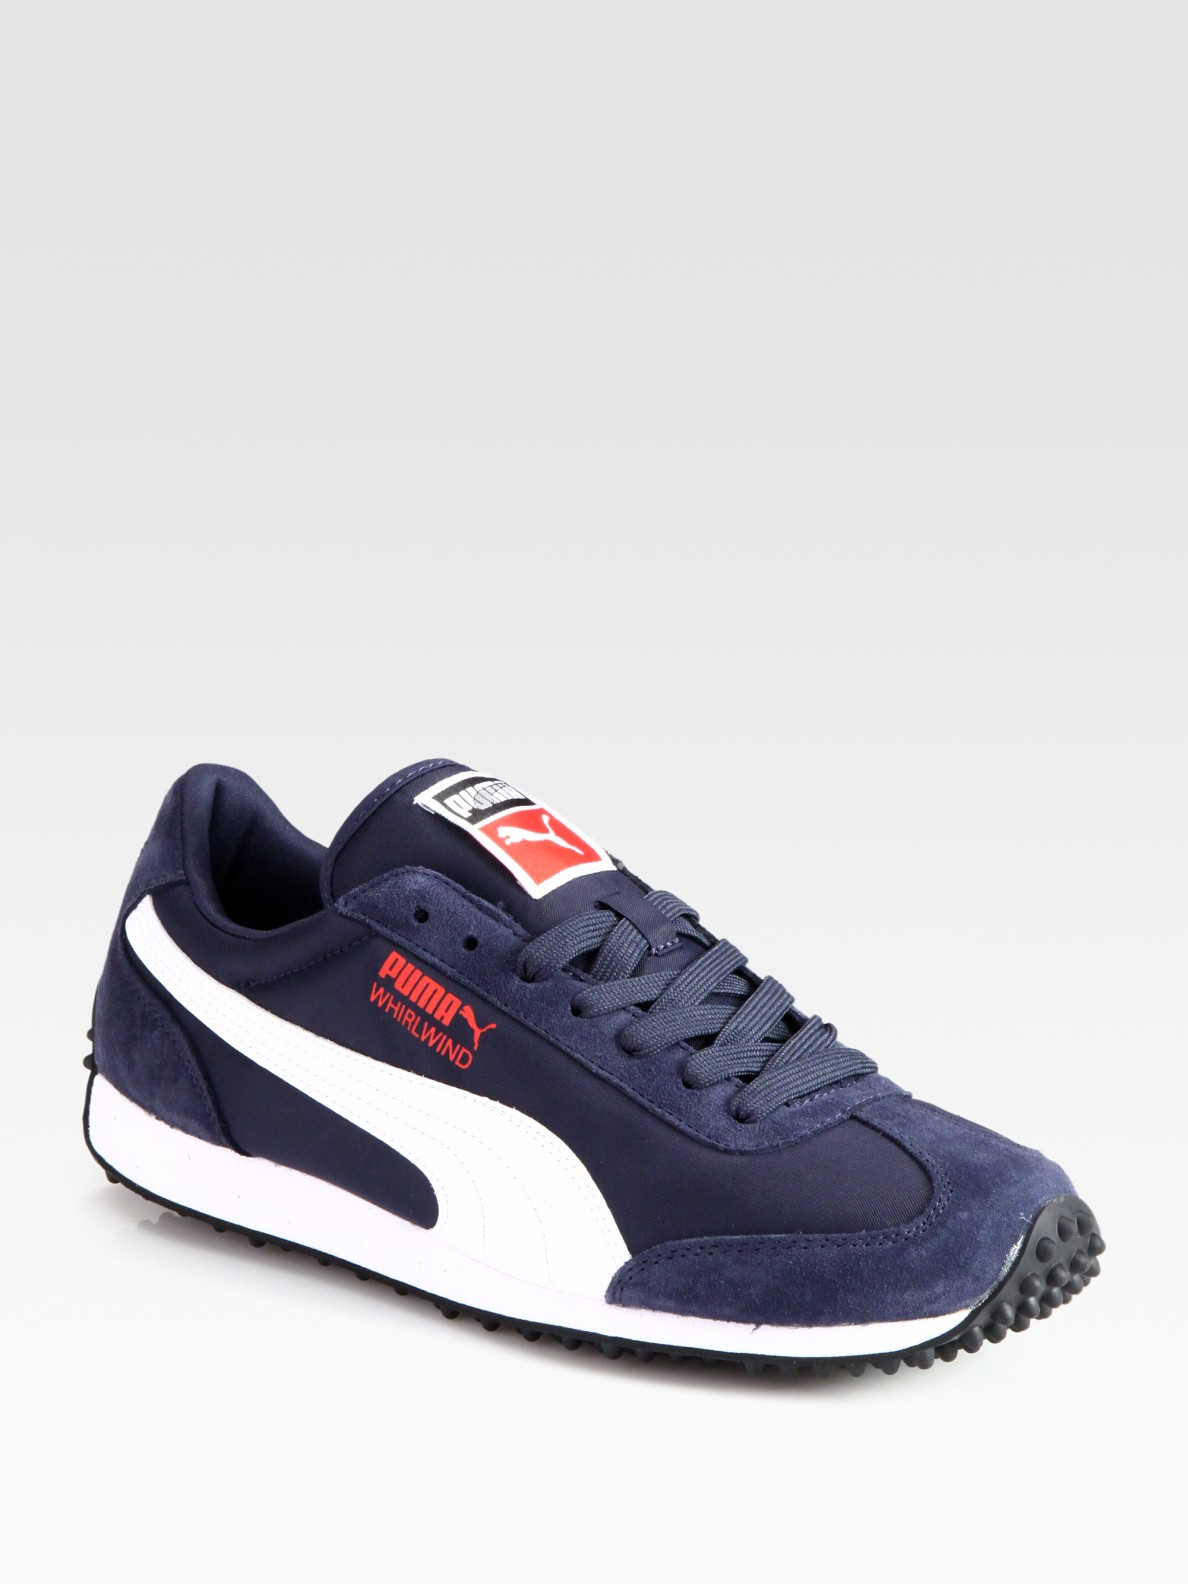 93a5bc71b6482c Lyst - PUMA Whirlwind Classic Sneakers in Blue for Men